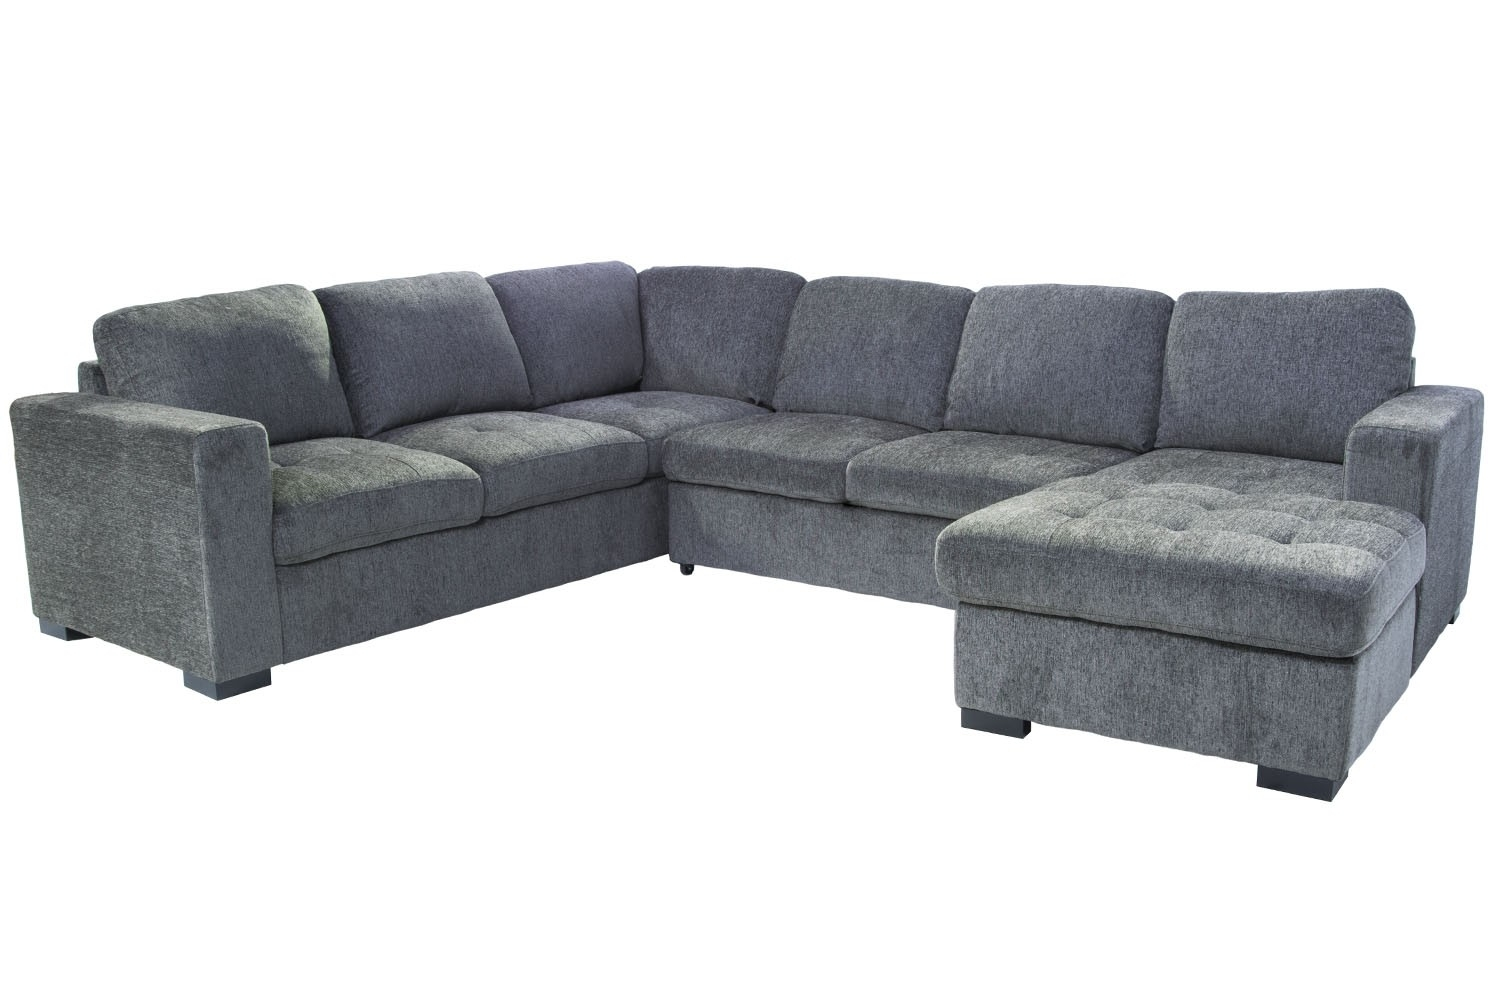 Sectional Sofas | Save Mor Online And In Store Throughout Marcus Chocolate 6 Piece Sectionals With Power Headrest And Usb (View 23 of 25)